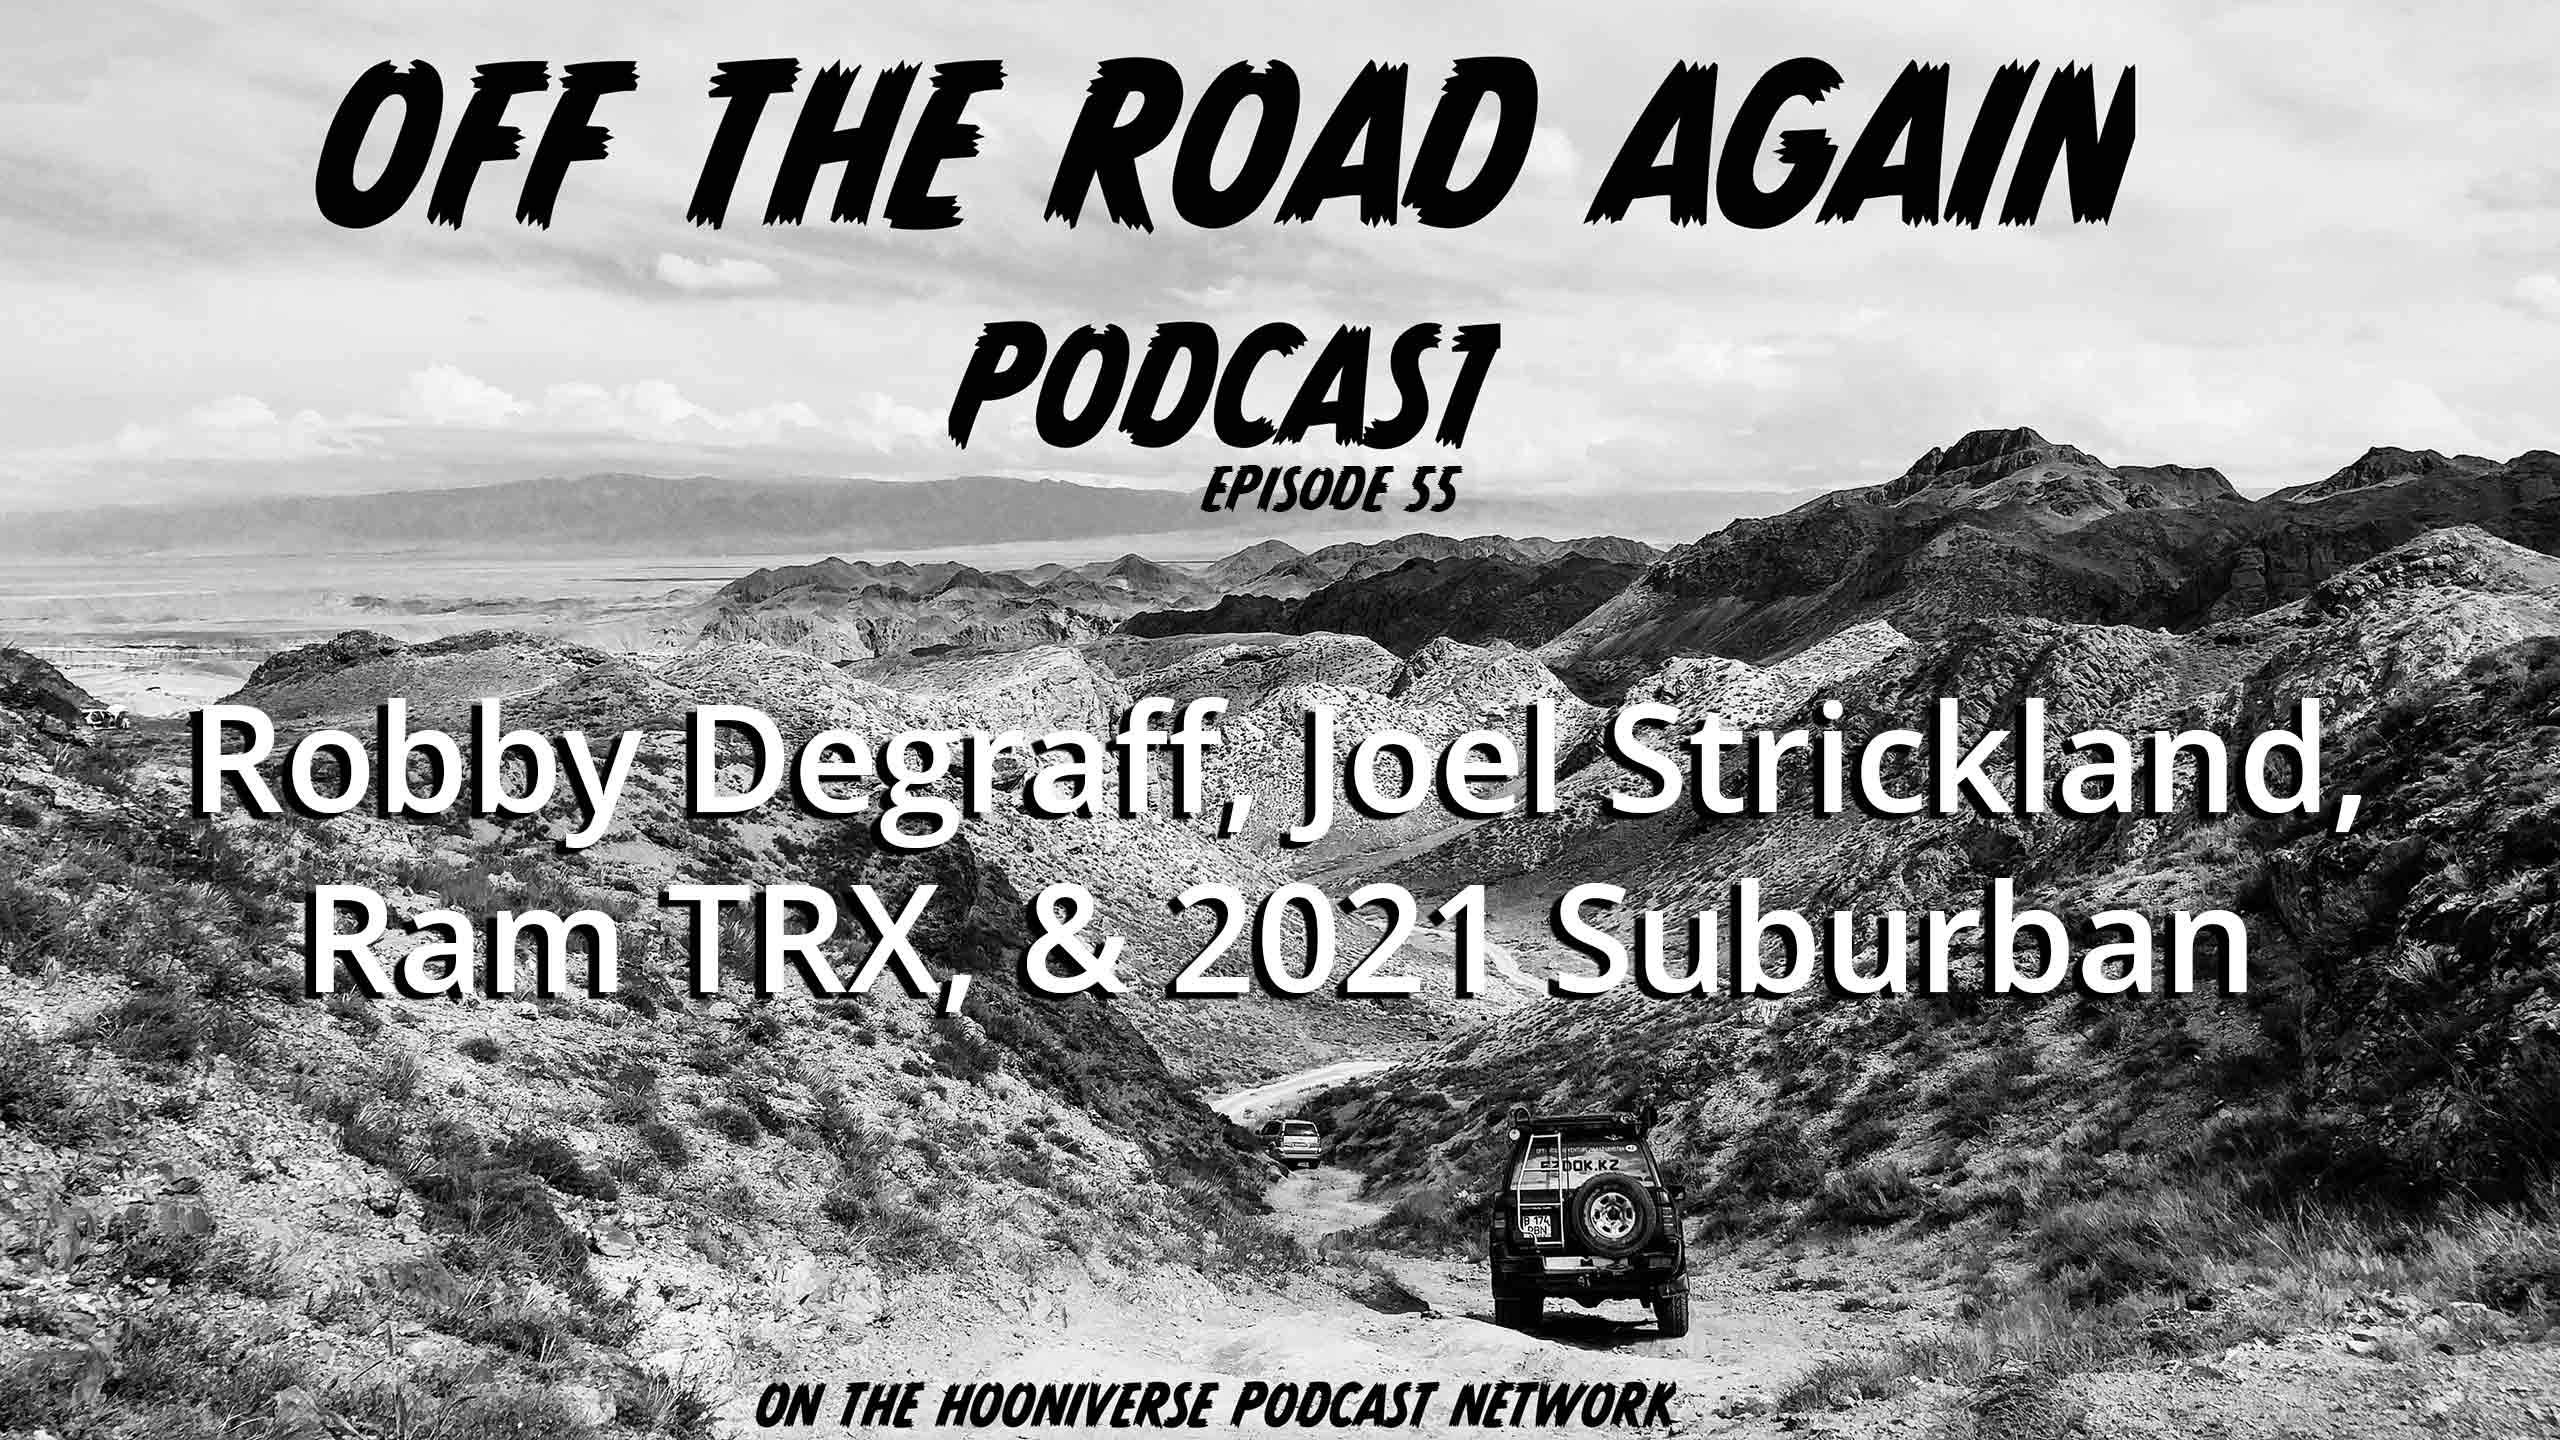 Ram-TRX-Robby-Degraff-Joel-Strickland-Off-The-Road-Again-Podcast-Episode-55